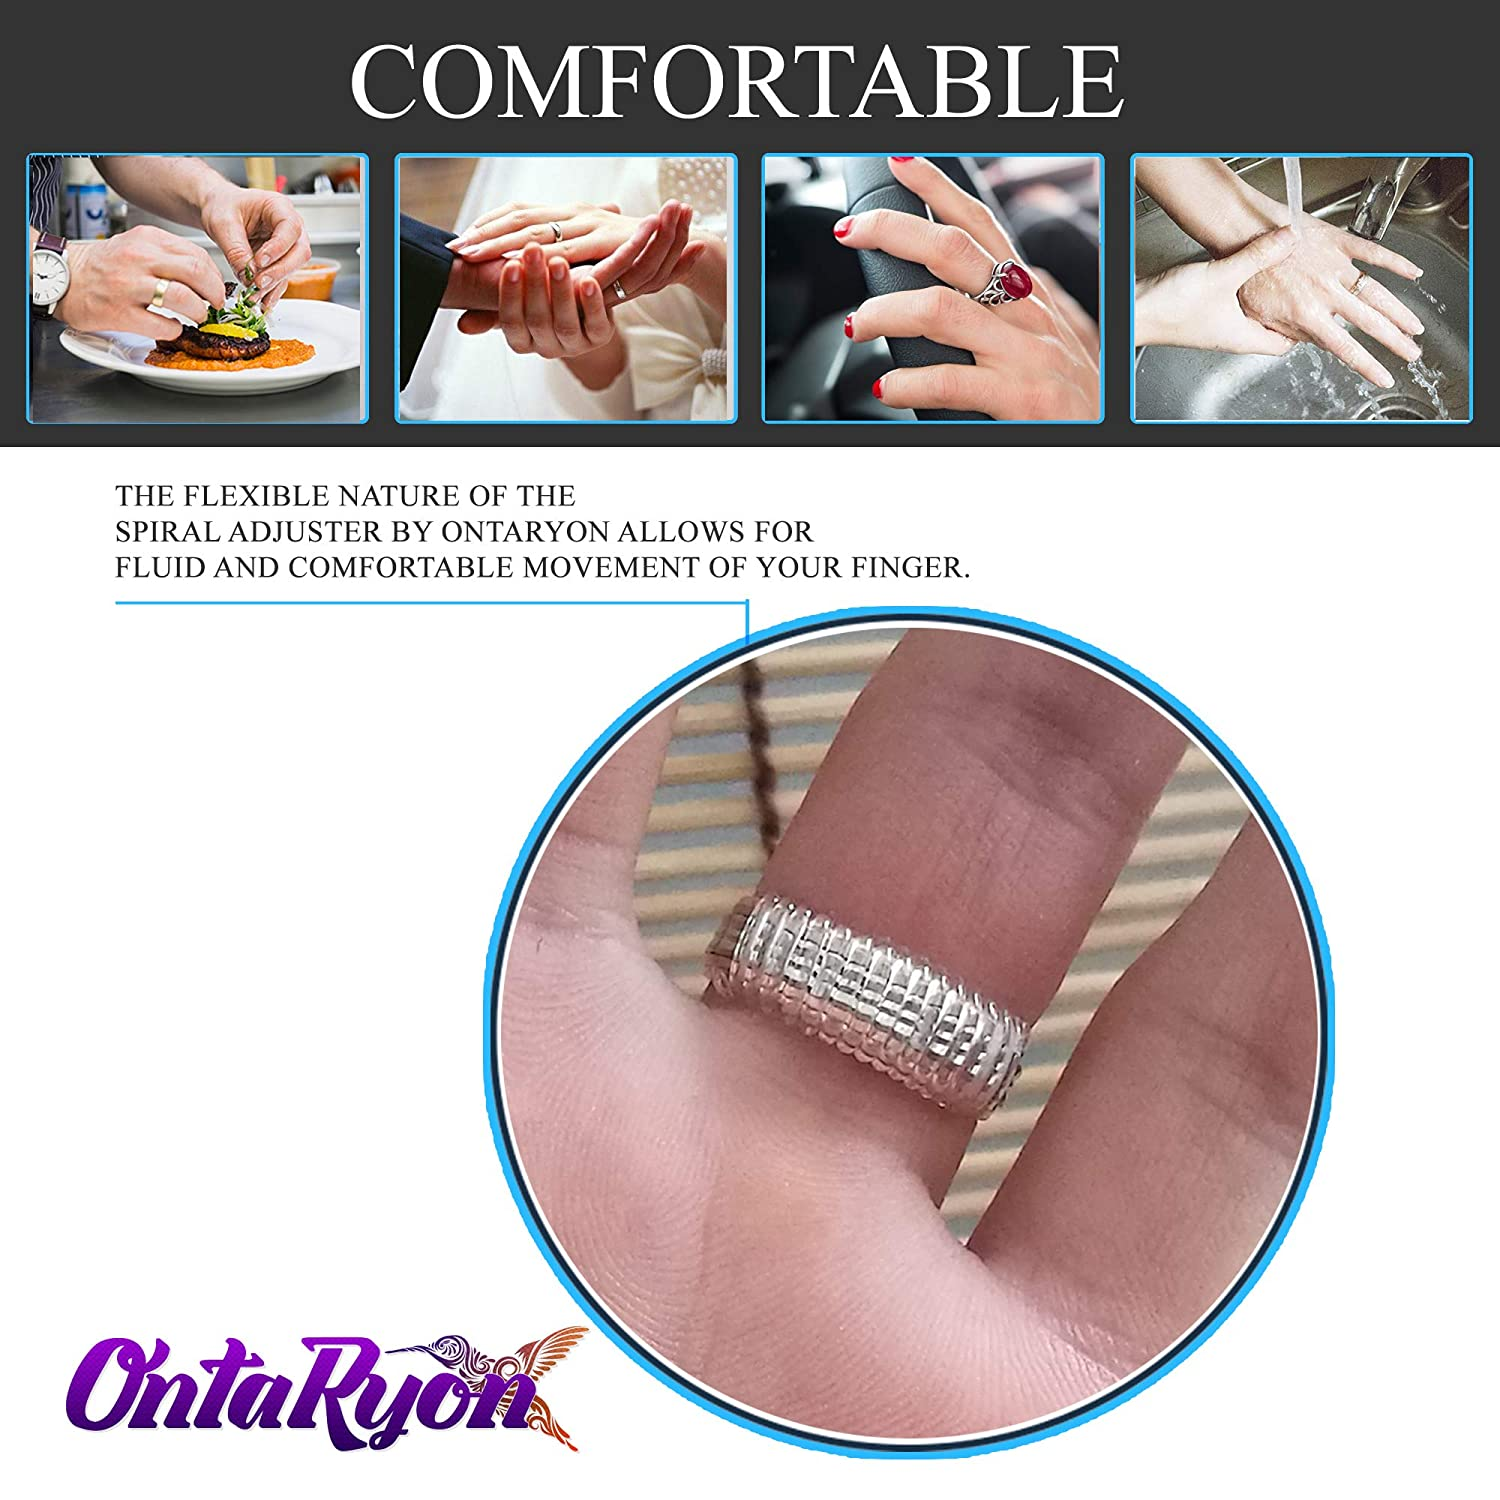 Comfortable Wear Rubber Tightener for Gold Rings 4 Sizes Jewellery Spacers Silicone Guards for Loose Rings OntaRyon Ring Size Adjuster Gold Resizer for Men and Women 8 Spirals